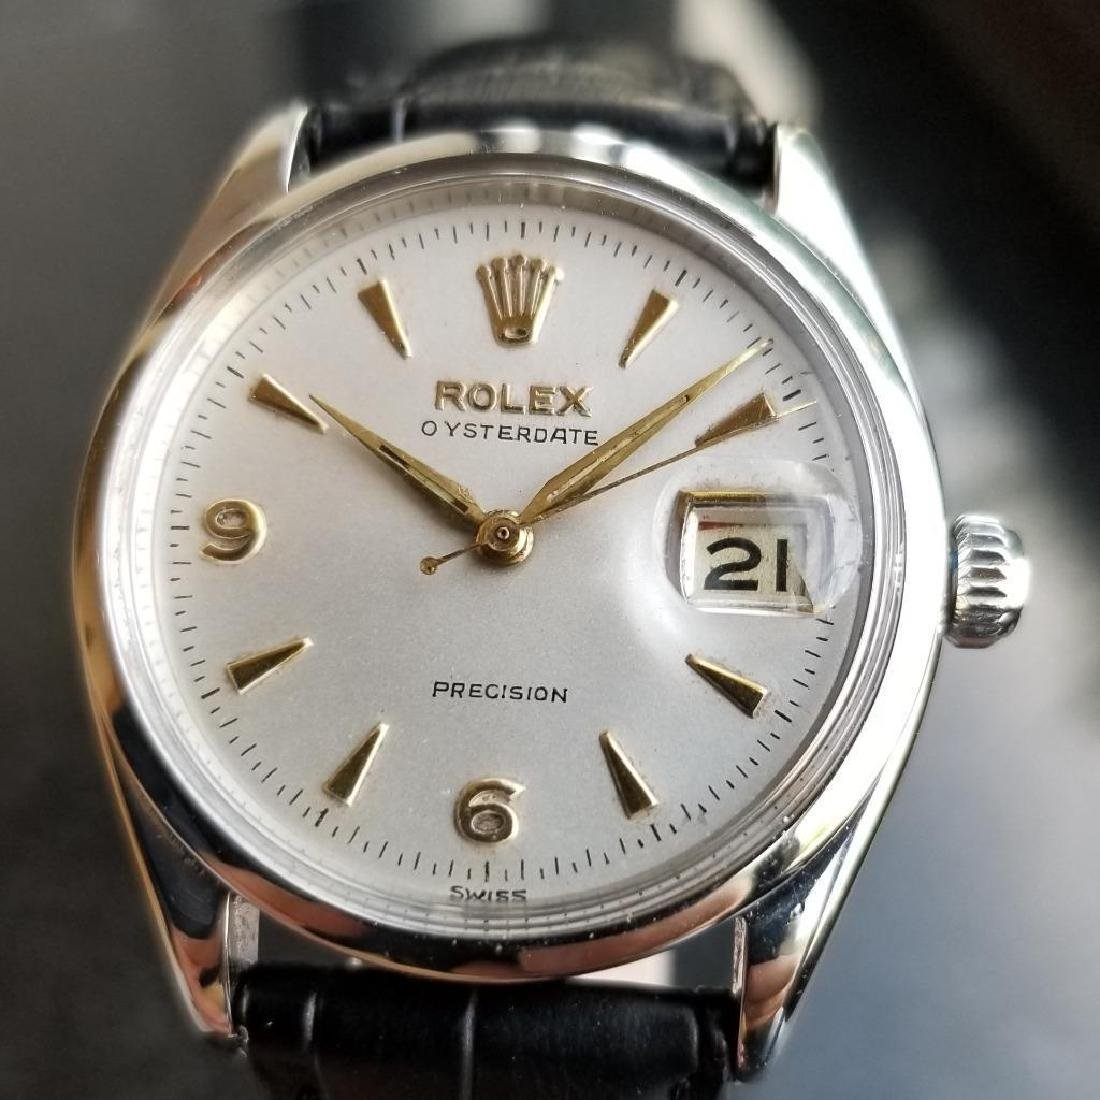 Vintage 1950 Rolex 6694 Oysterdate Precision Manual